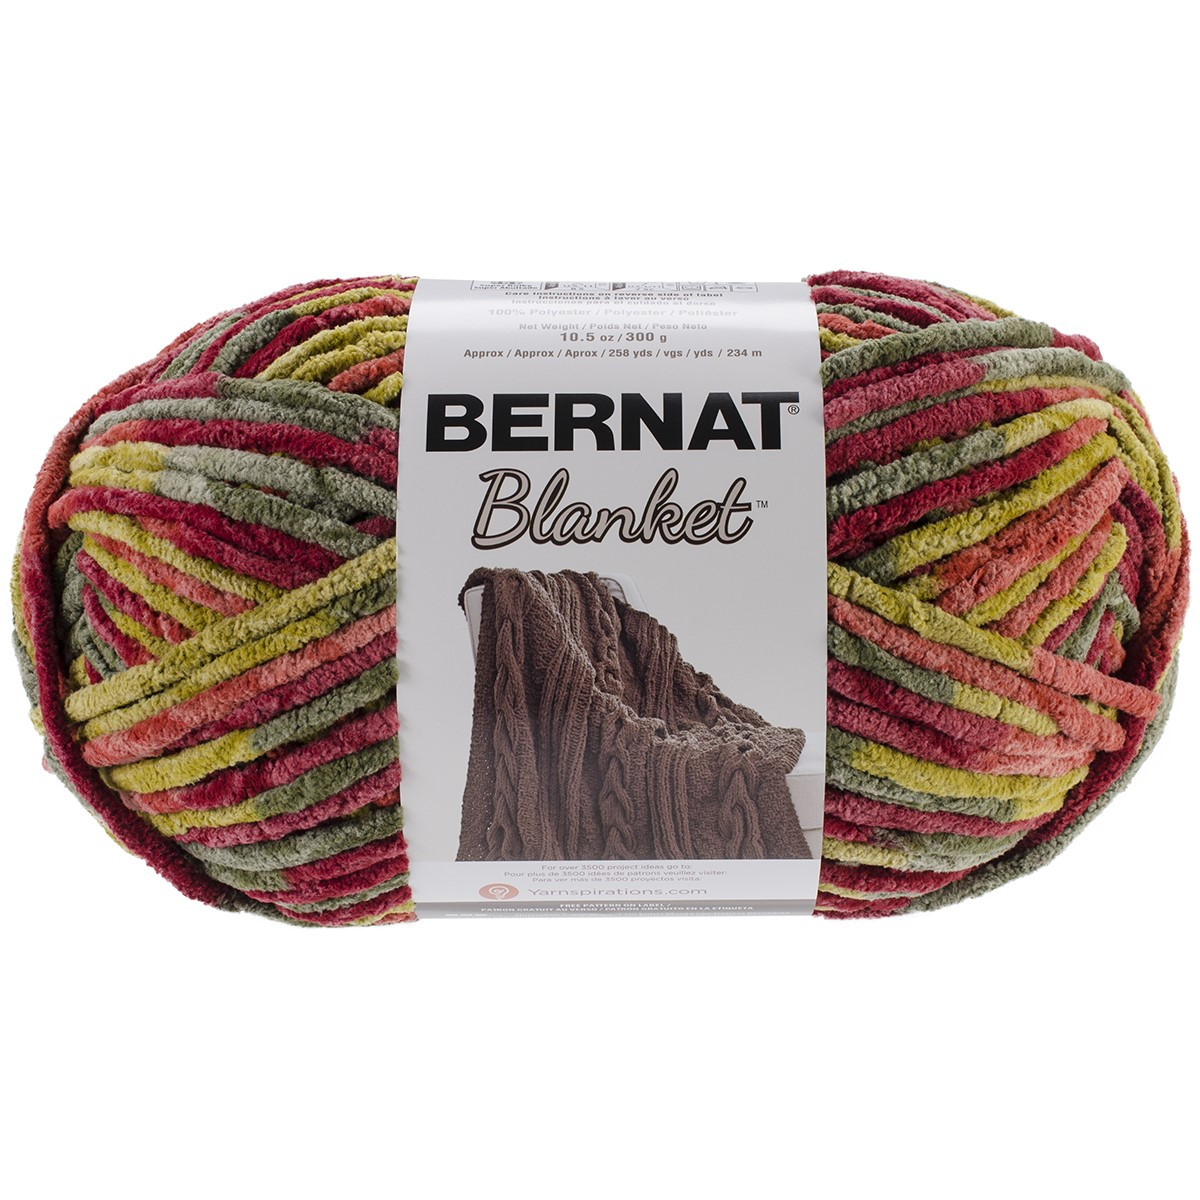 Bernat Blanket Big Ball Yarn Unique Bernat Blanket Big Ball Yarn Harvest Of Innovative 41 Ideas Bernat Blanket Big Ball Yarn